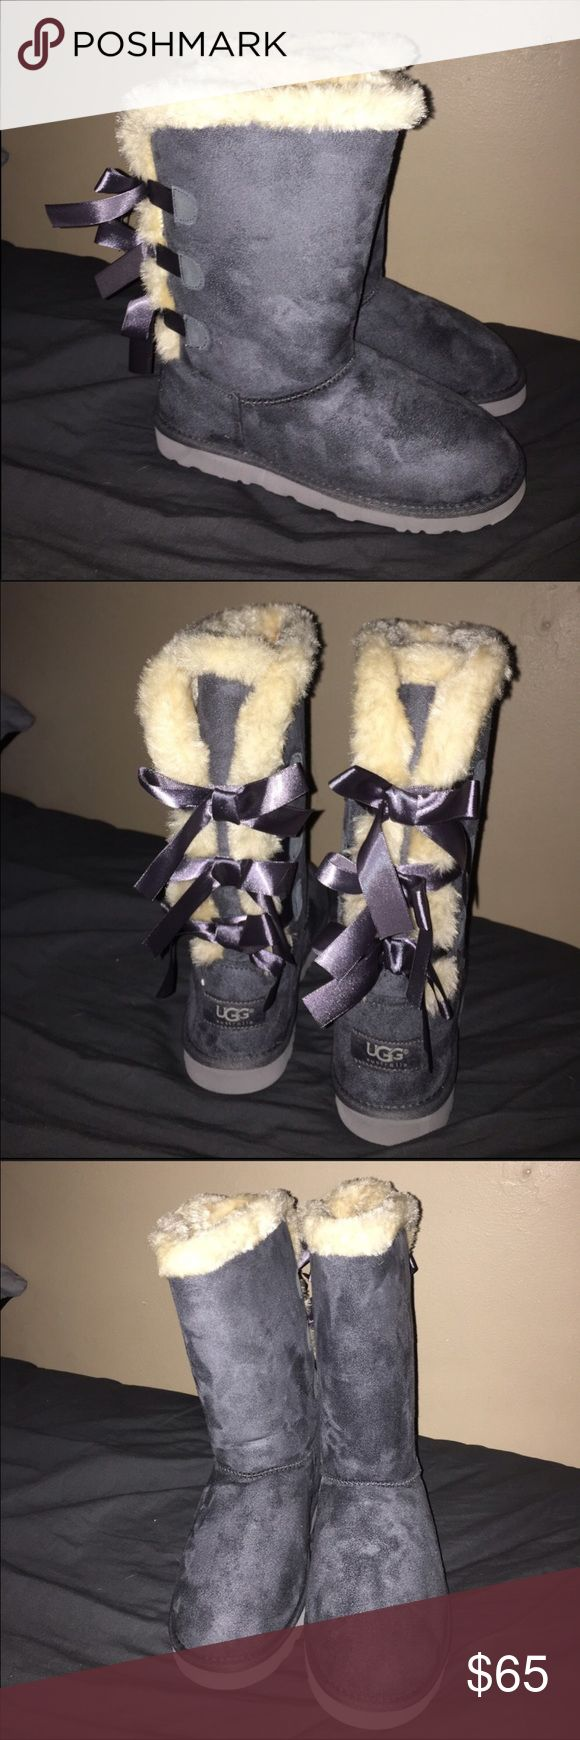 Gray Faux Fur UGGS, brand new! Beautiful, brand new UGGS never worn! These are beautiful and I'm only selling because there are too snug on me. I ordered them off Poshmark and was told they were authentic, but I do not think they are. They are beautiful though and i wouldn't have known. I'm bummed they don't fit me because they are so beautiful and go with so many things! UGG Shoes Winter & Rain Boots